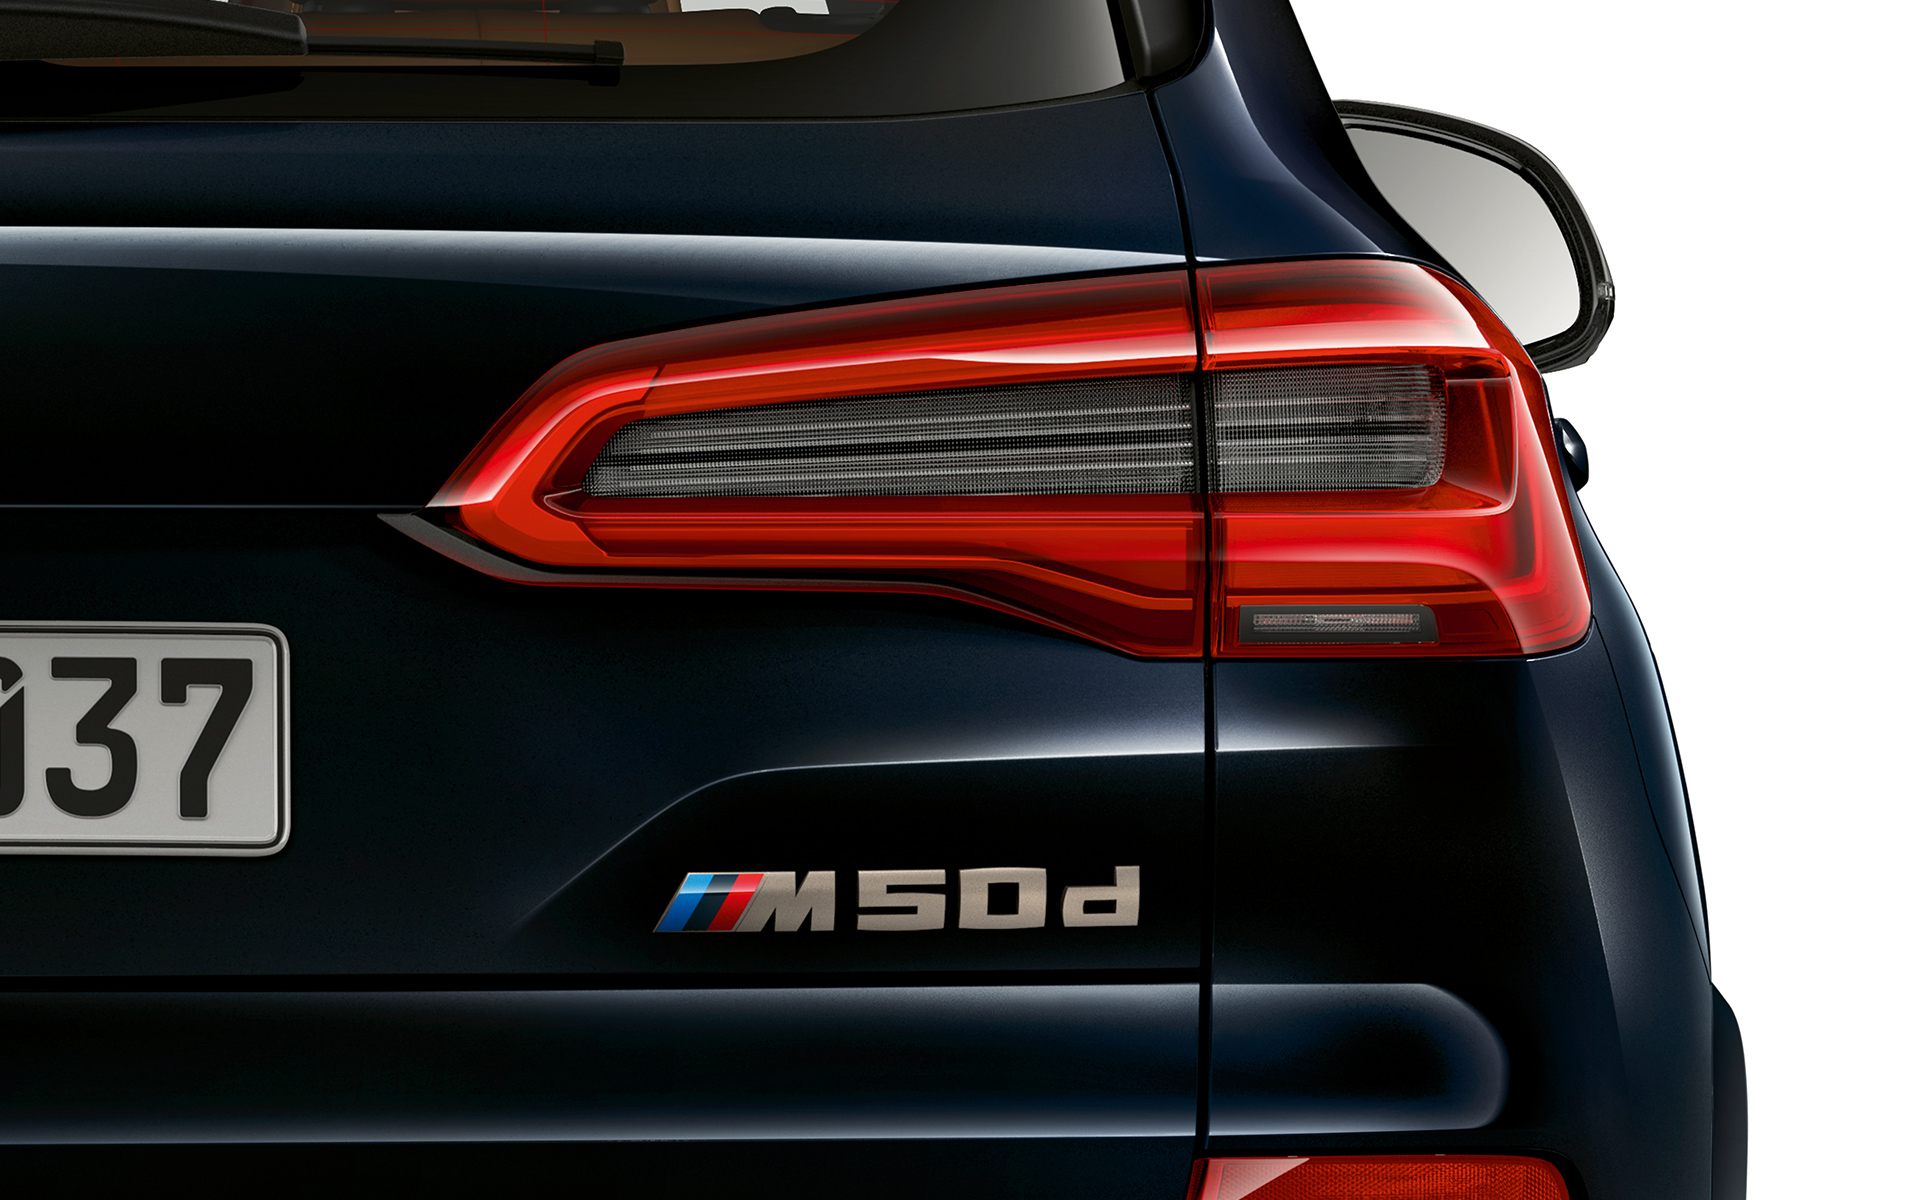 Modelaanduiding van de BMW X5 M50d in detail